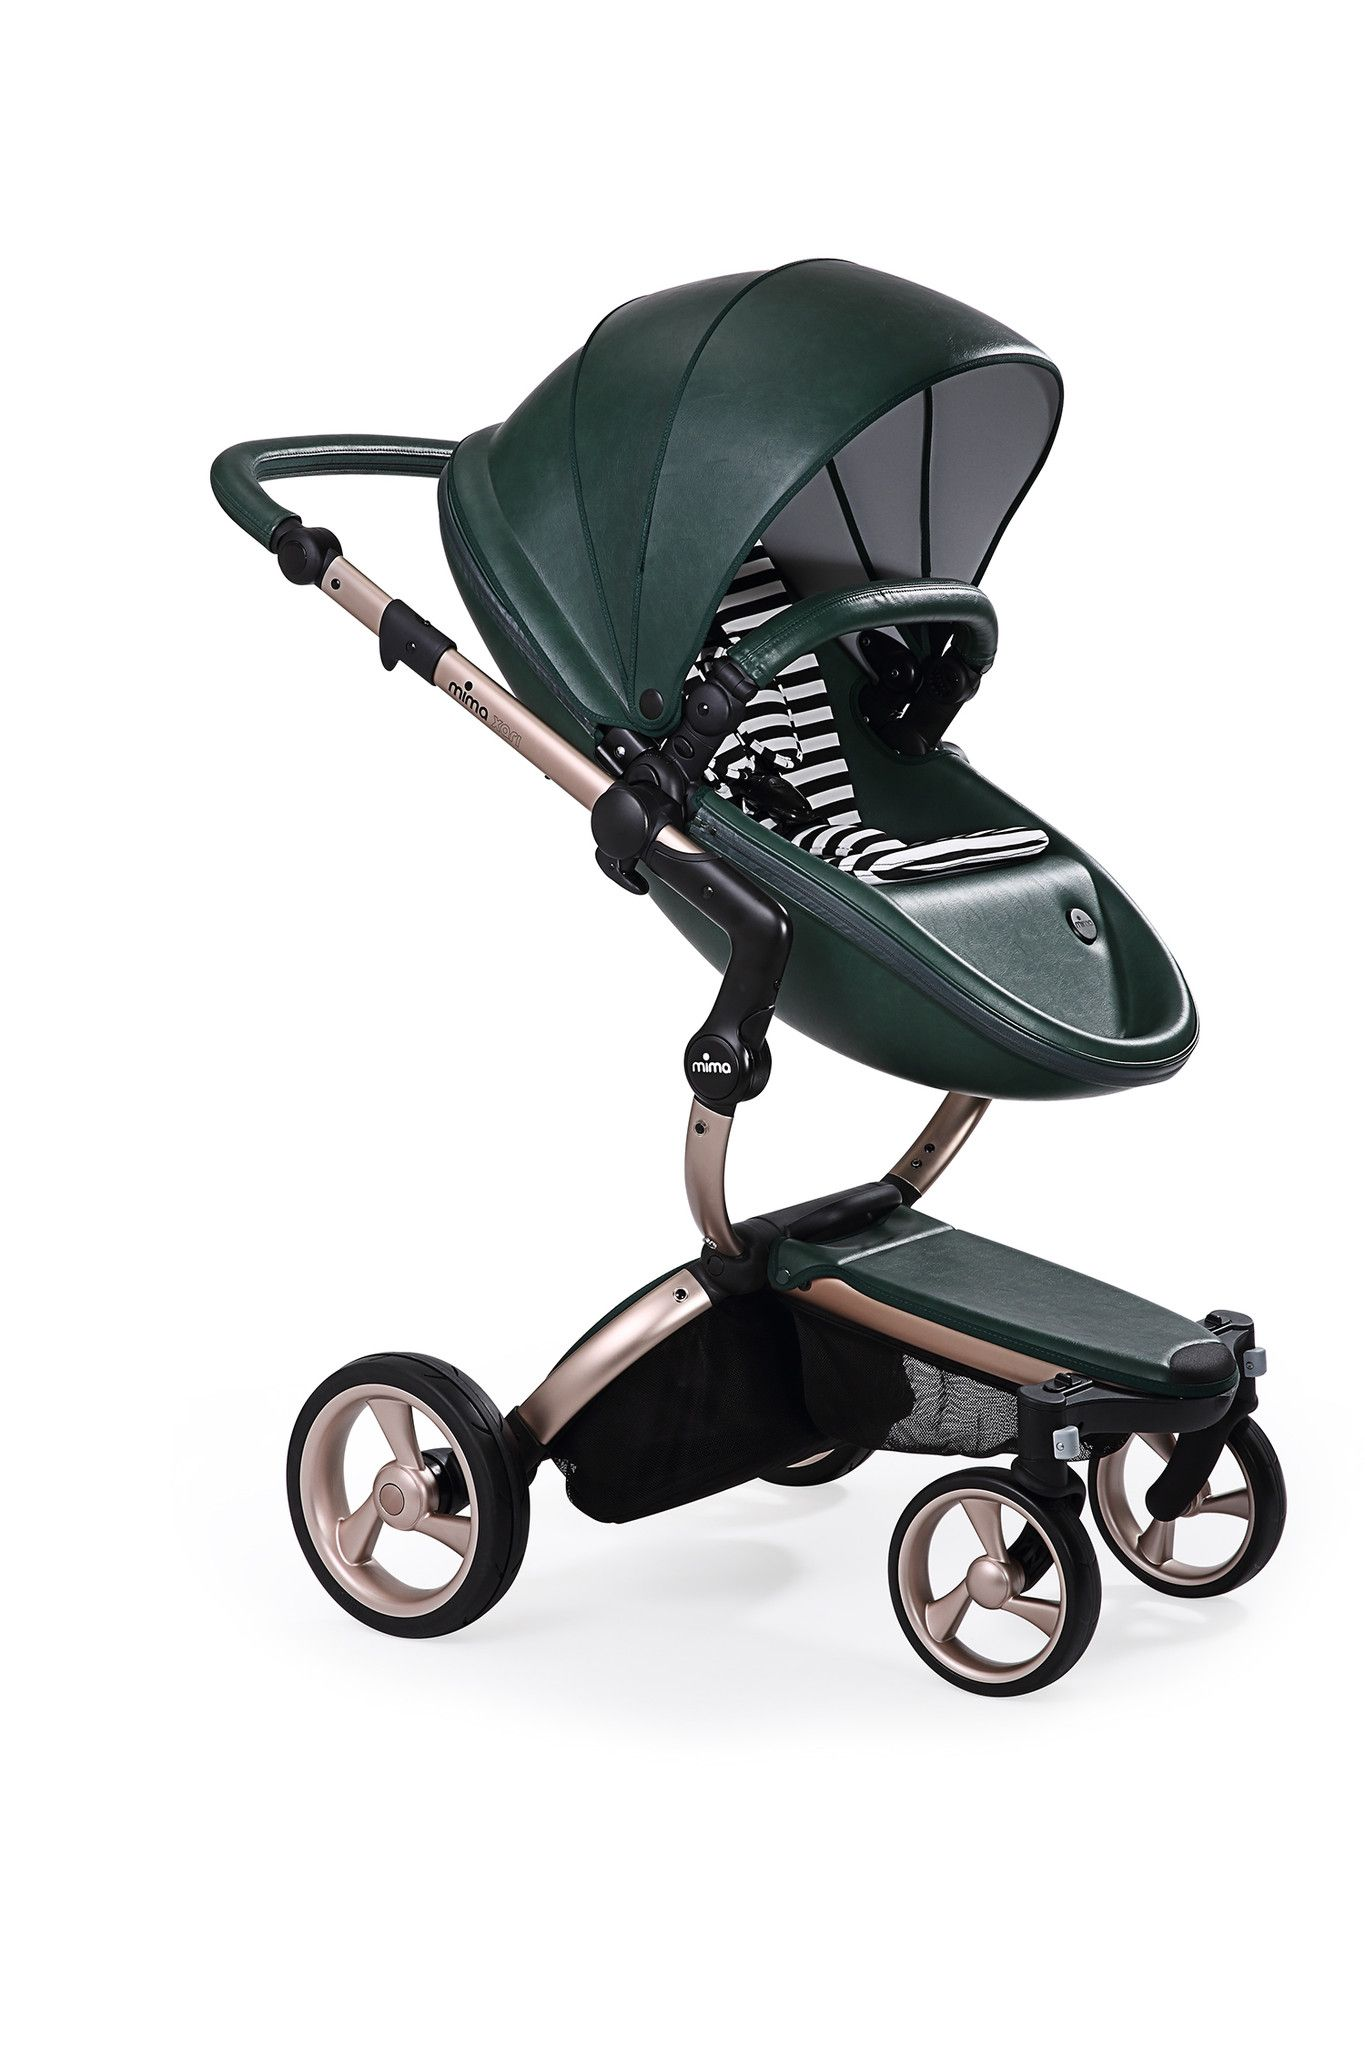 Mima Xari - British Green Seat, Black/White Starter Pack | The only stroller made with leatherette fabric, the Mima Xari is more than a pretty face. With a chic design and advanced features, this highly-customizable stroller strikes the perfect balance of fashion and functionality.